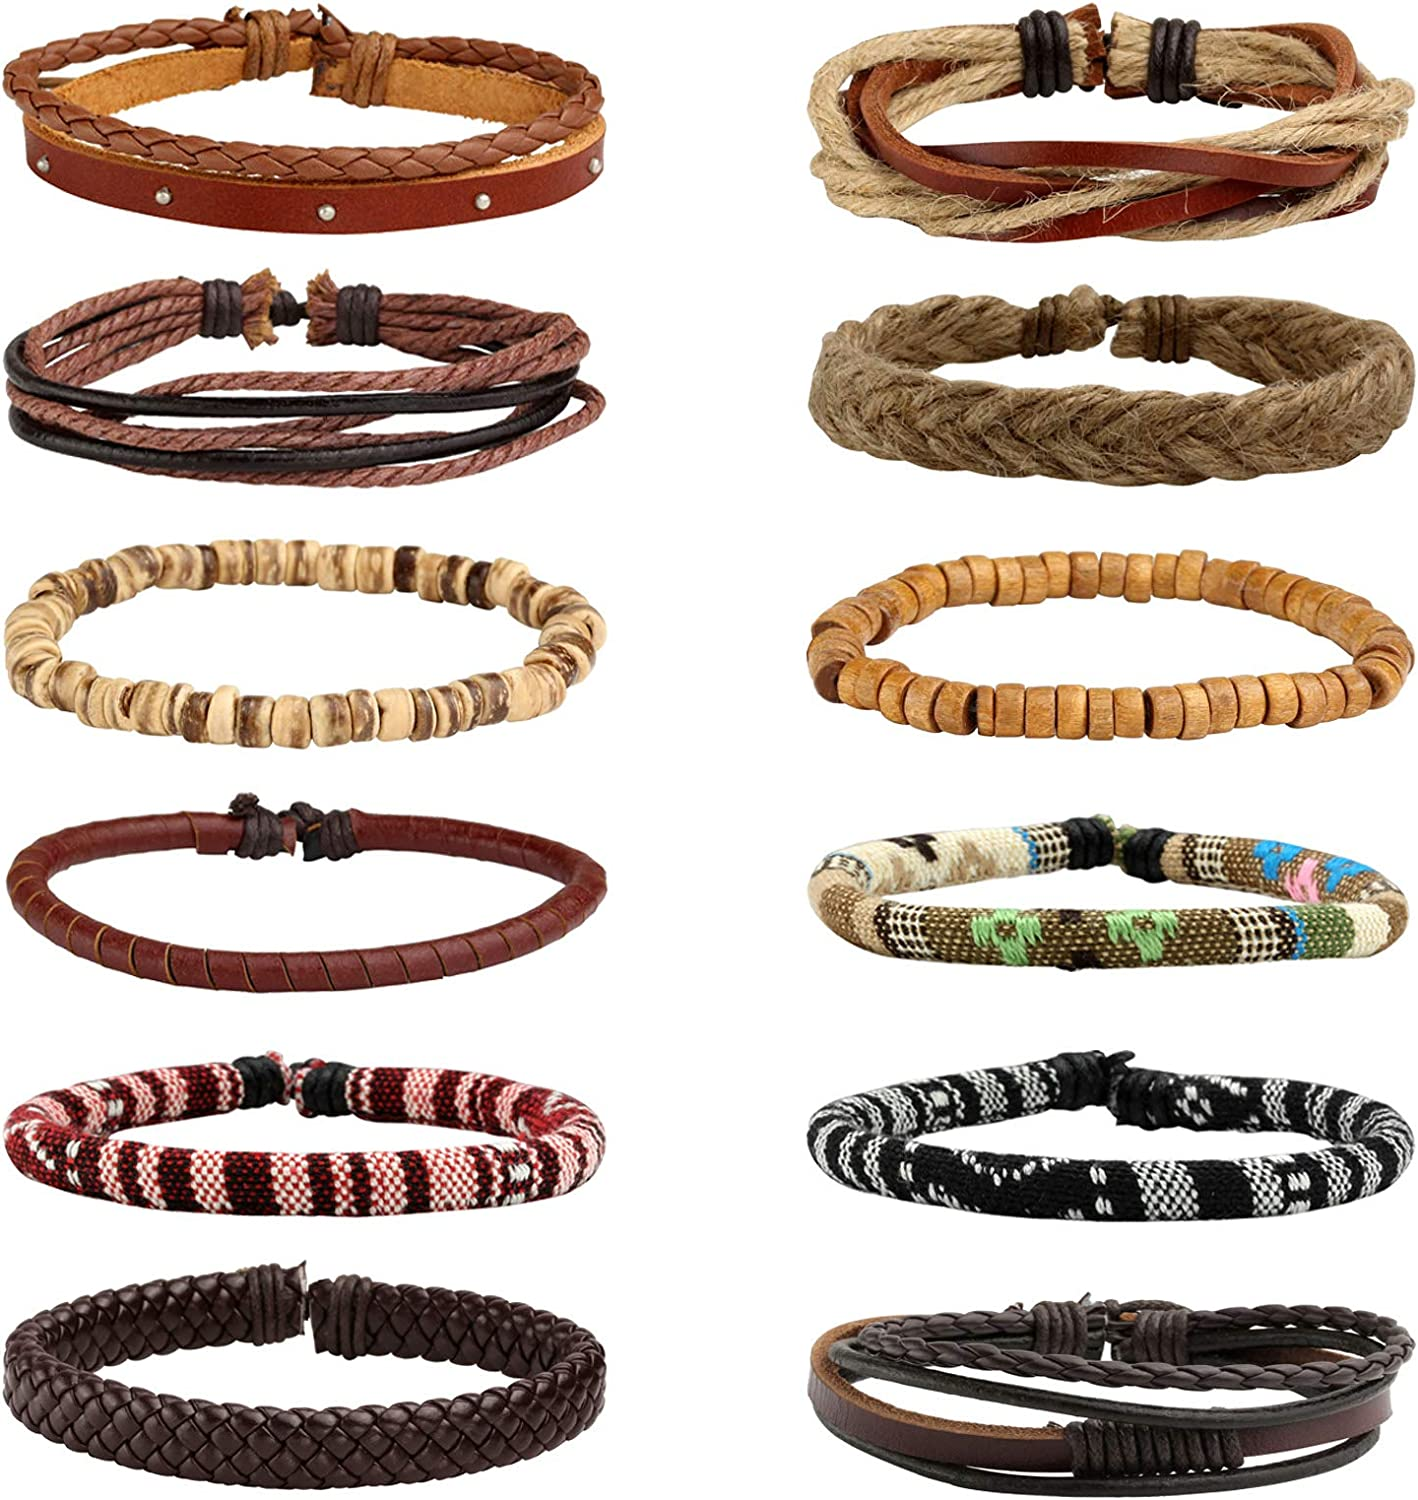 MILAKOO 12pcs Men Women Linen Hemp Cords Wood Beads Ethnic Tribal Bracelets Leather Wristbands